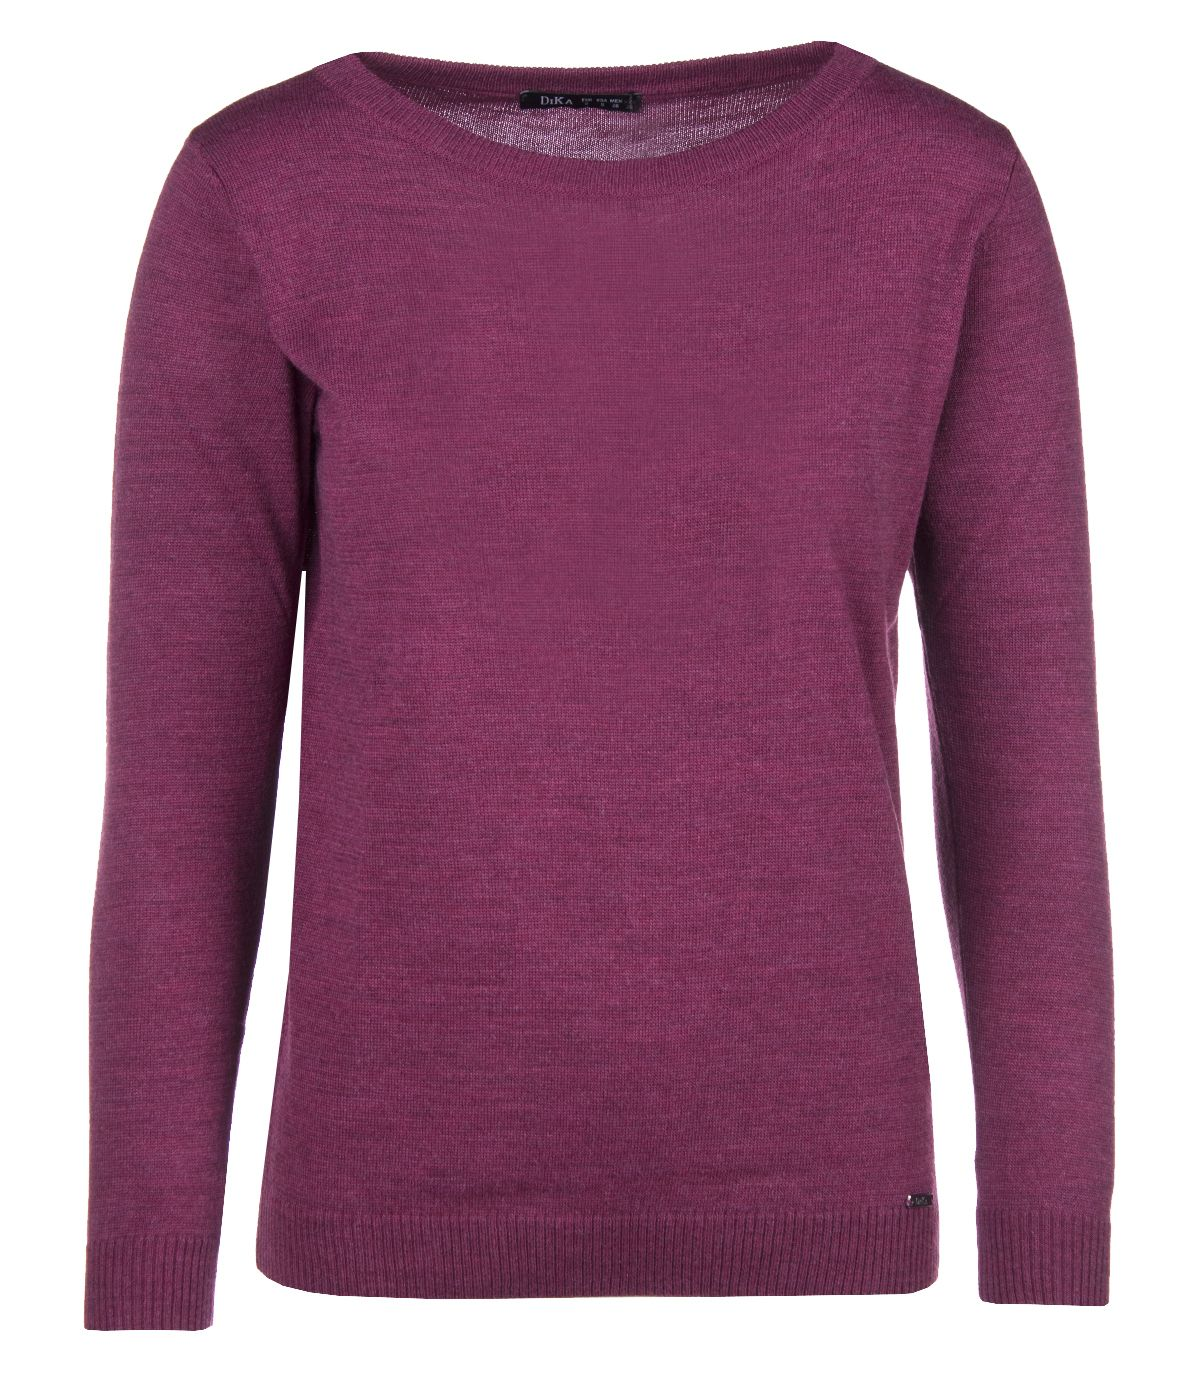 SWEATER WITH ROUND NECKLINE AND LONG SLEEVES 0